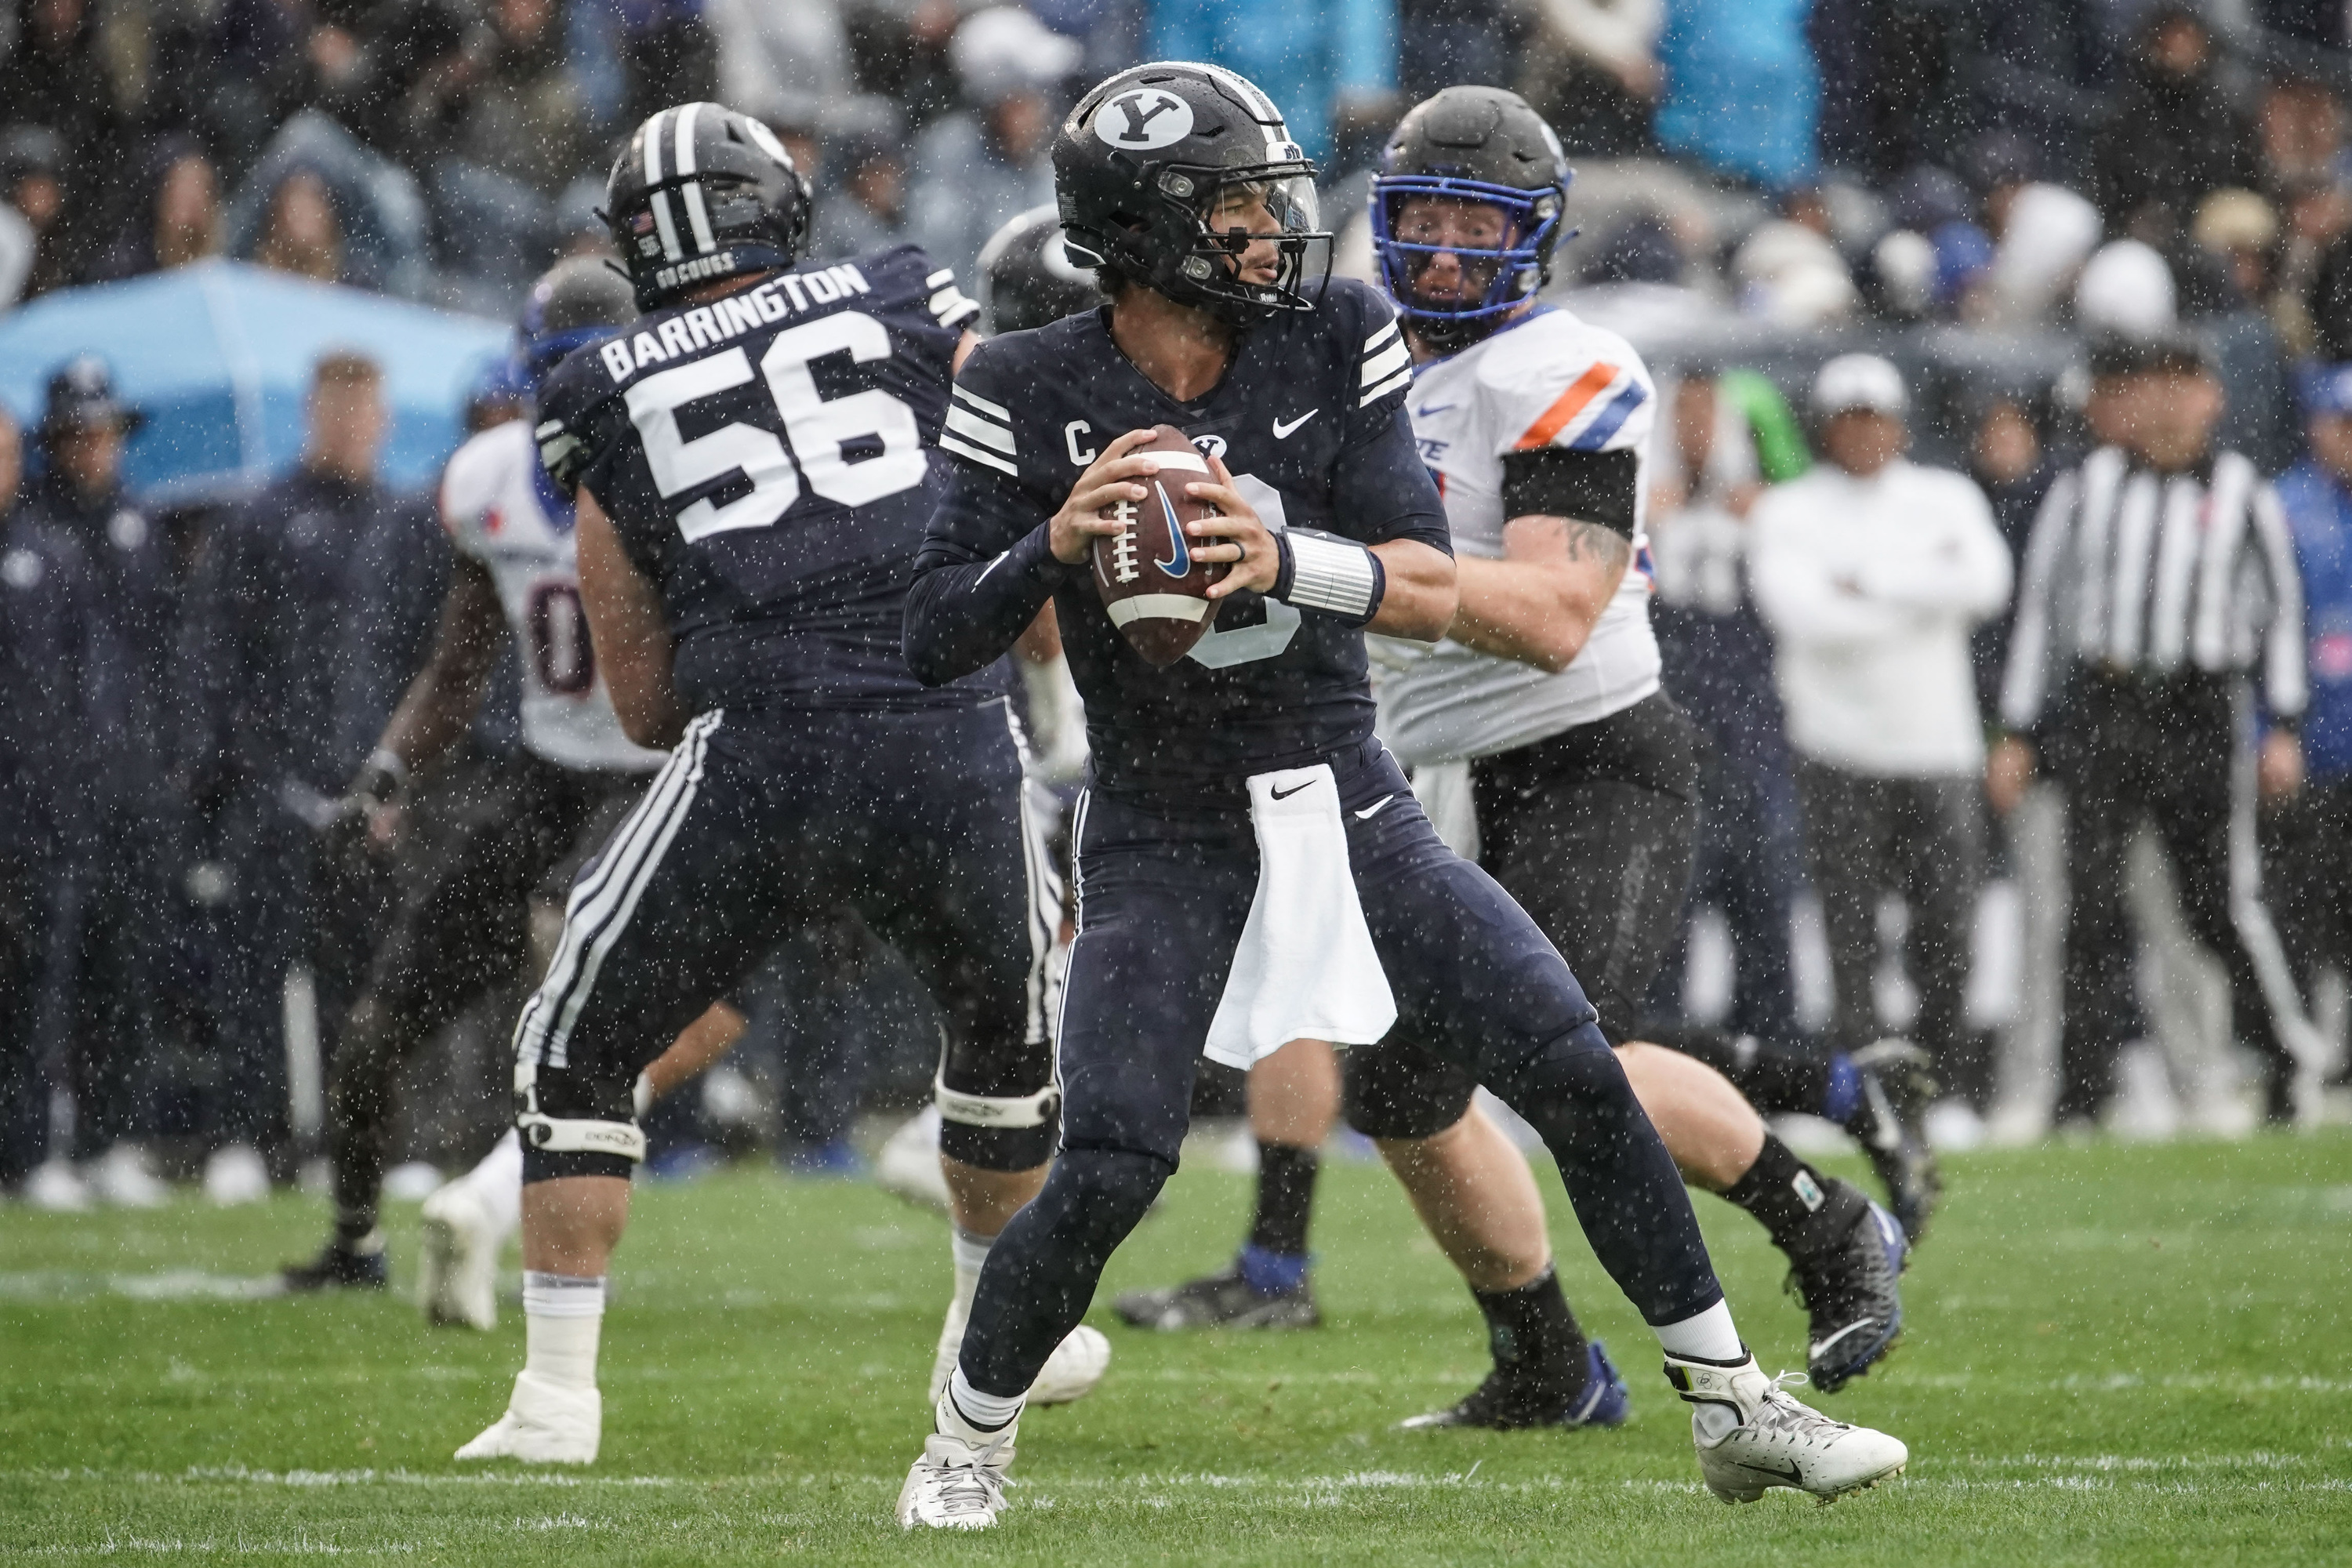 Brigham Young quarterback Jaren Hall looks to throw the ball against Boise State.